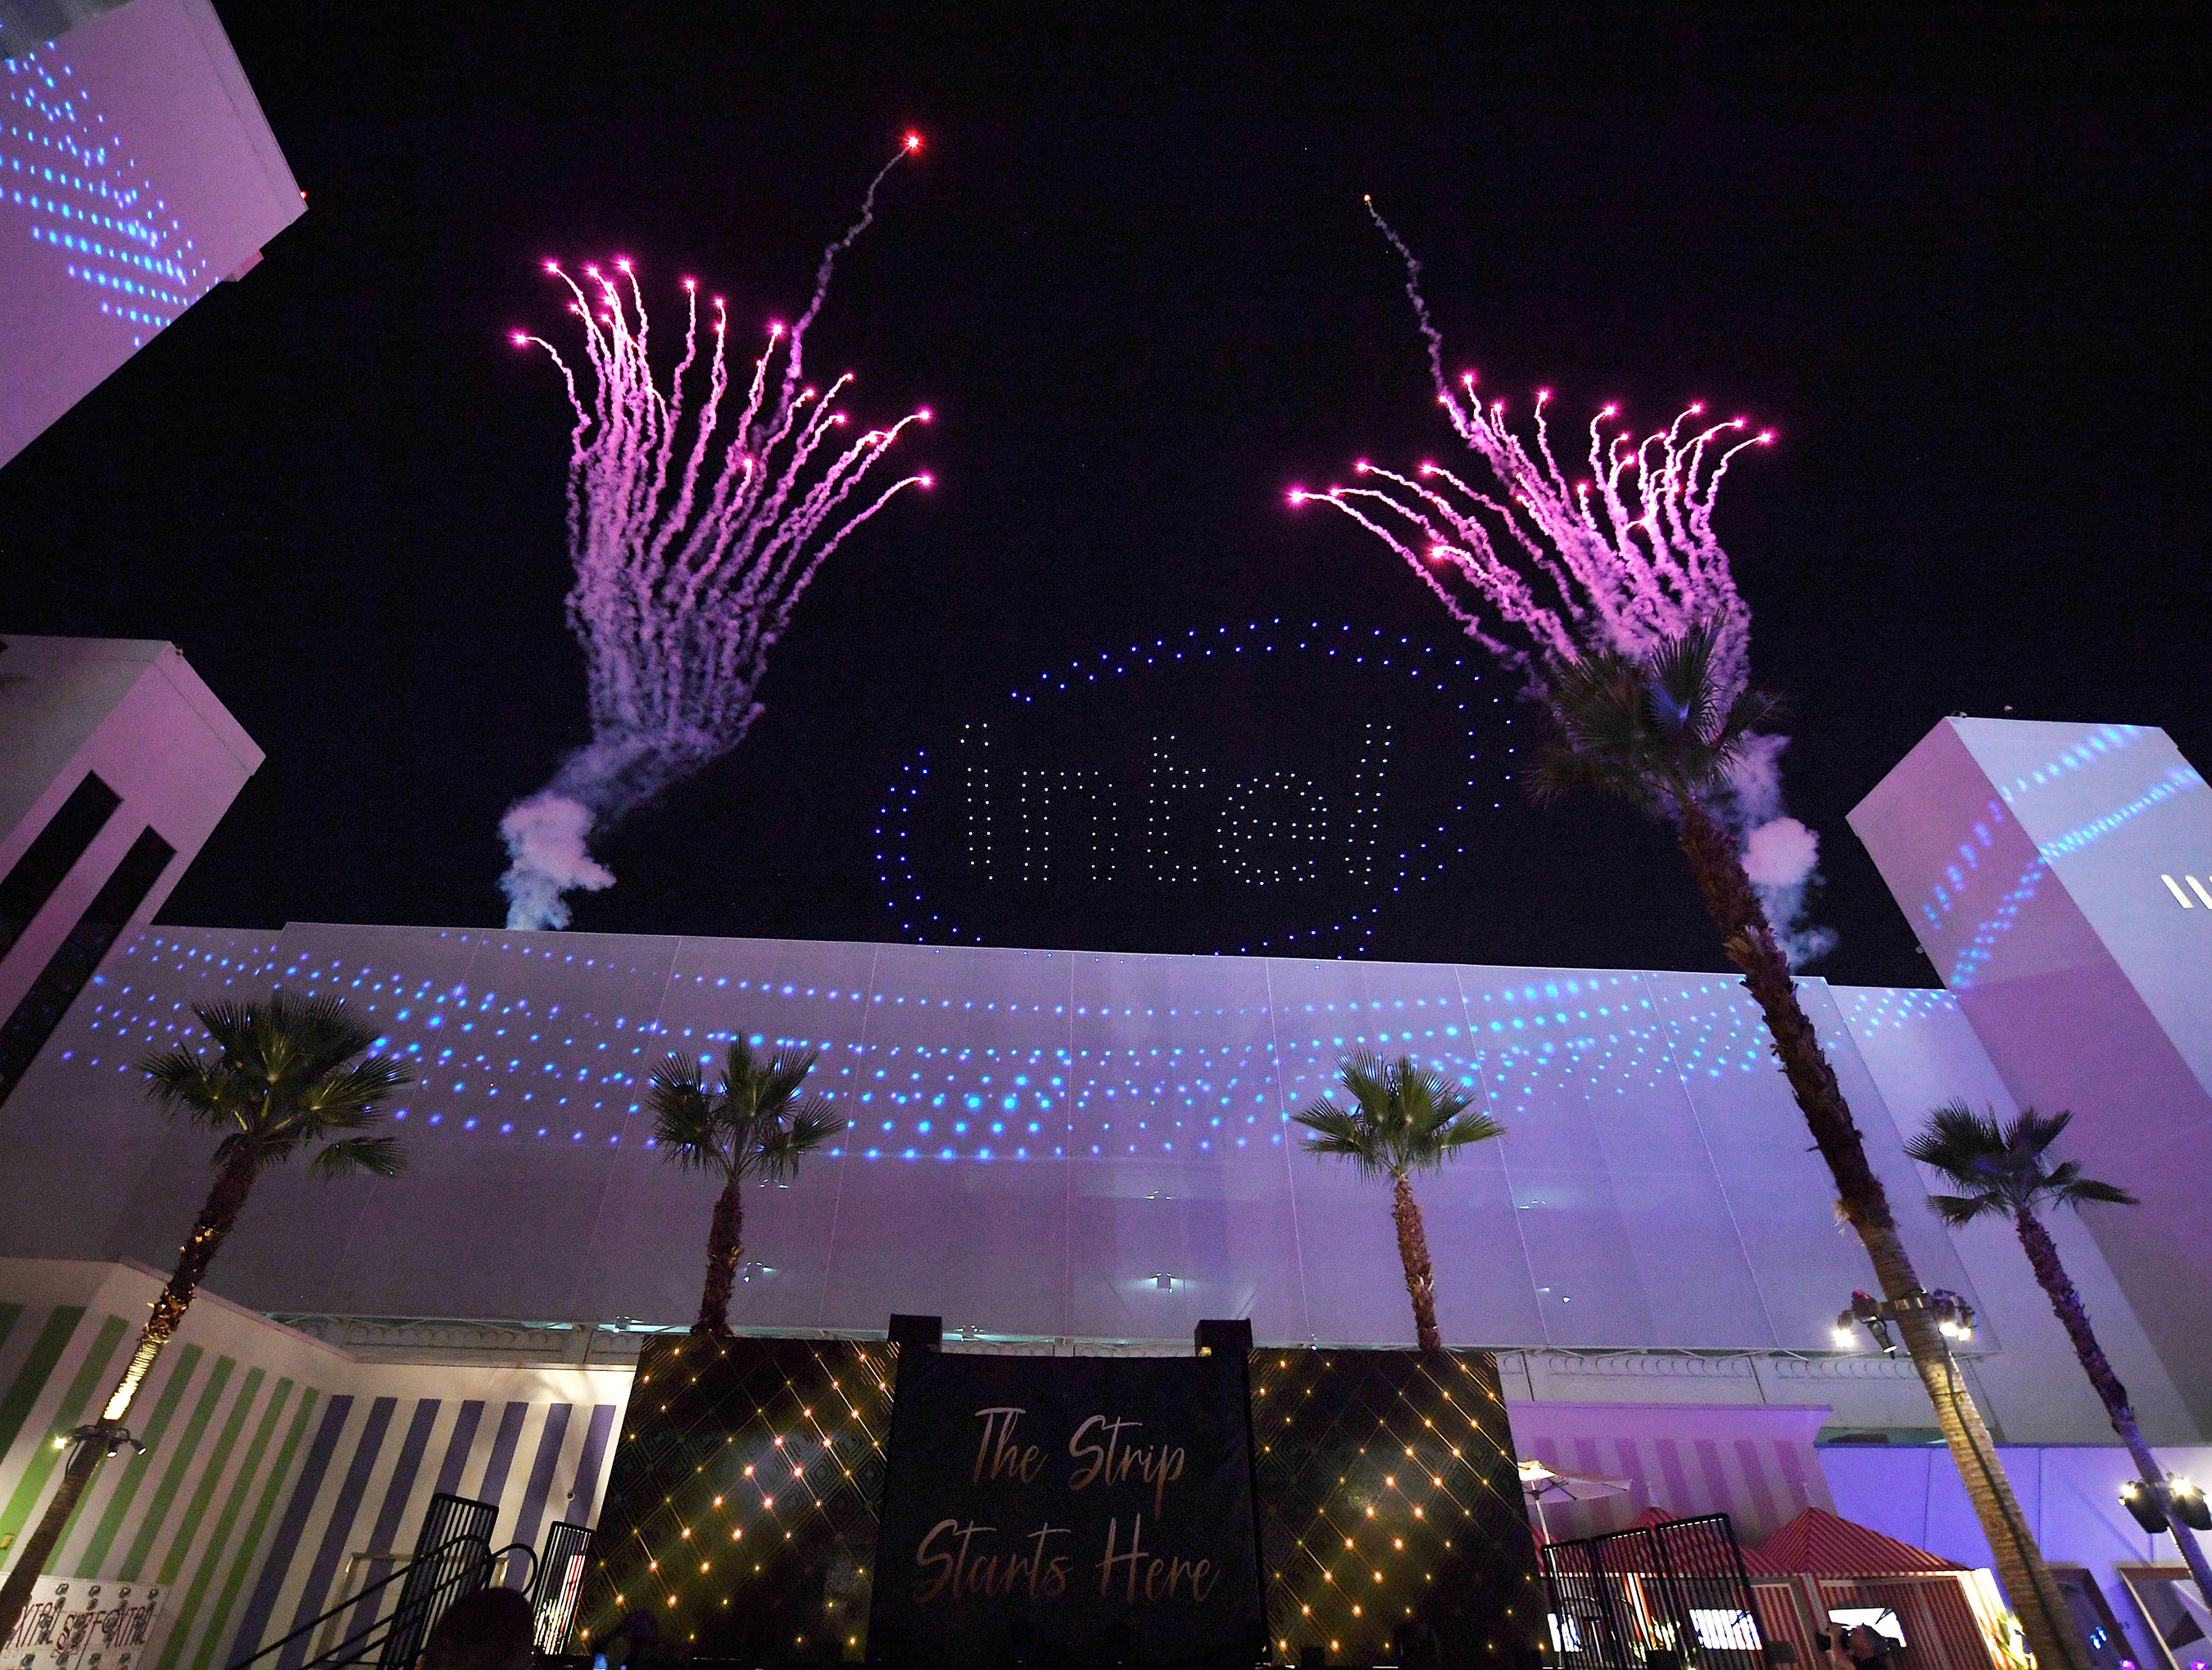 Guests gather for an unexpected, custom-designed Intel drone light show that would debut the new SAHARA Las Vegas light show.